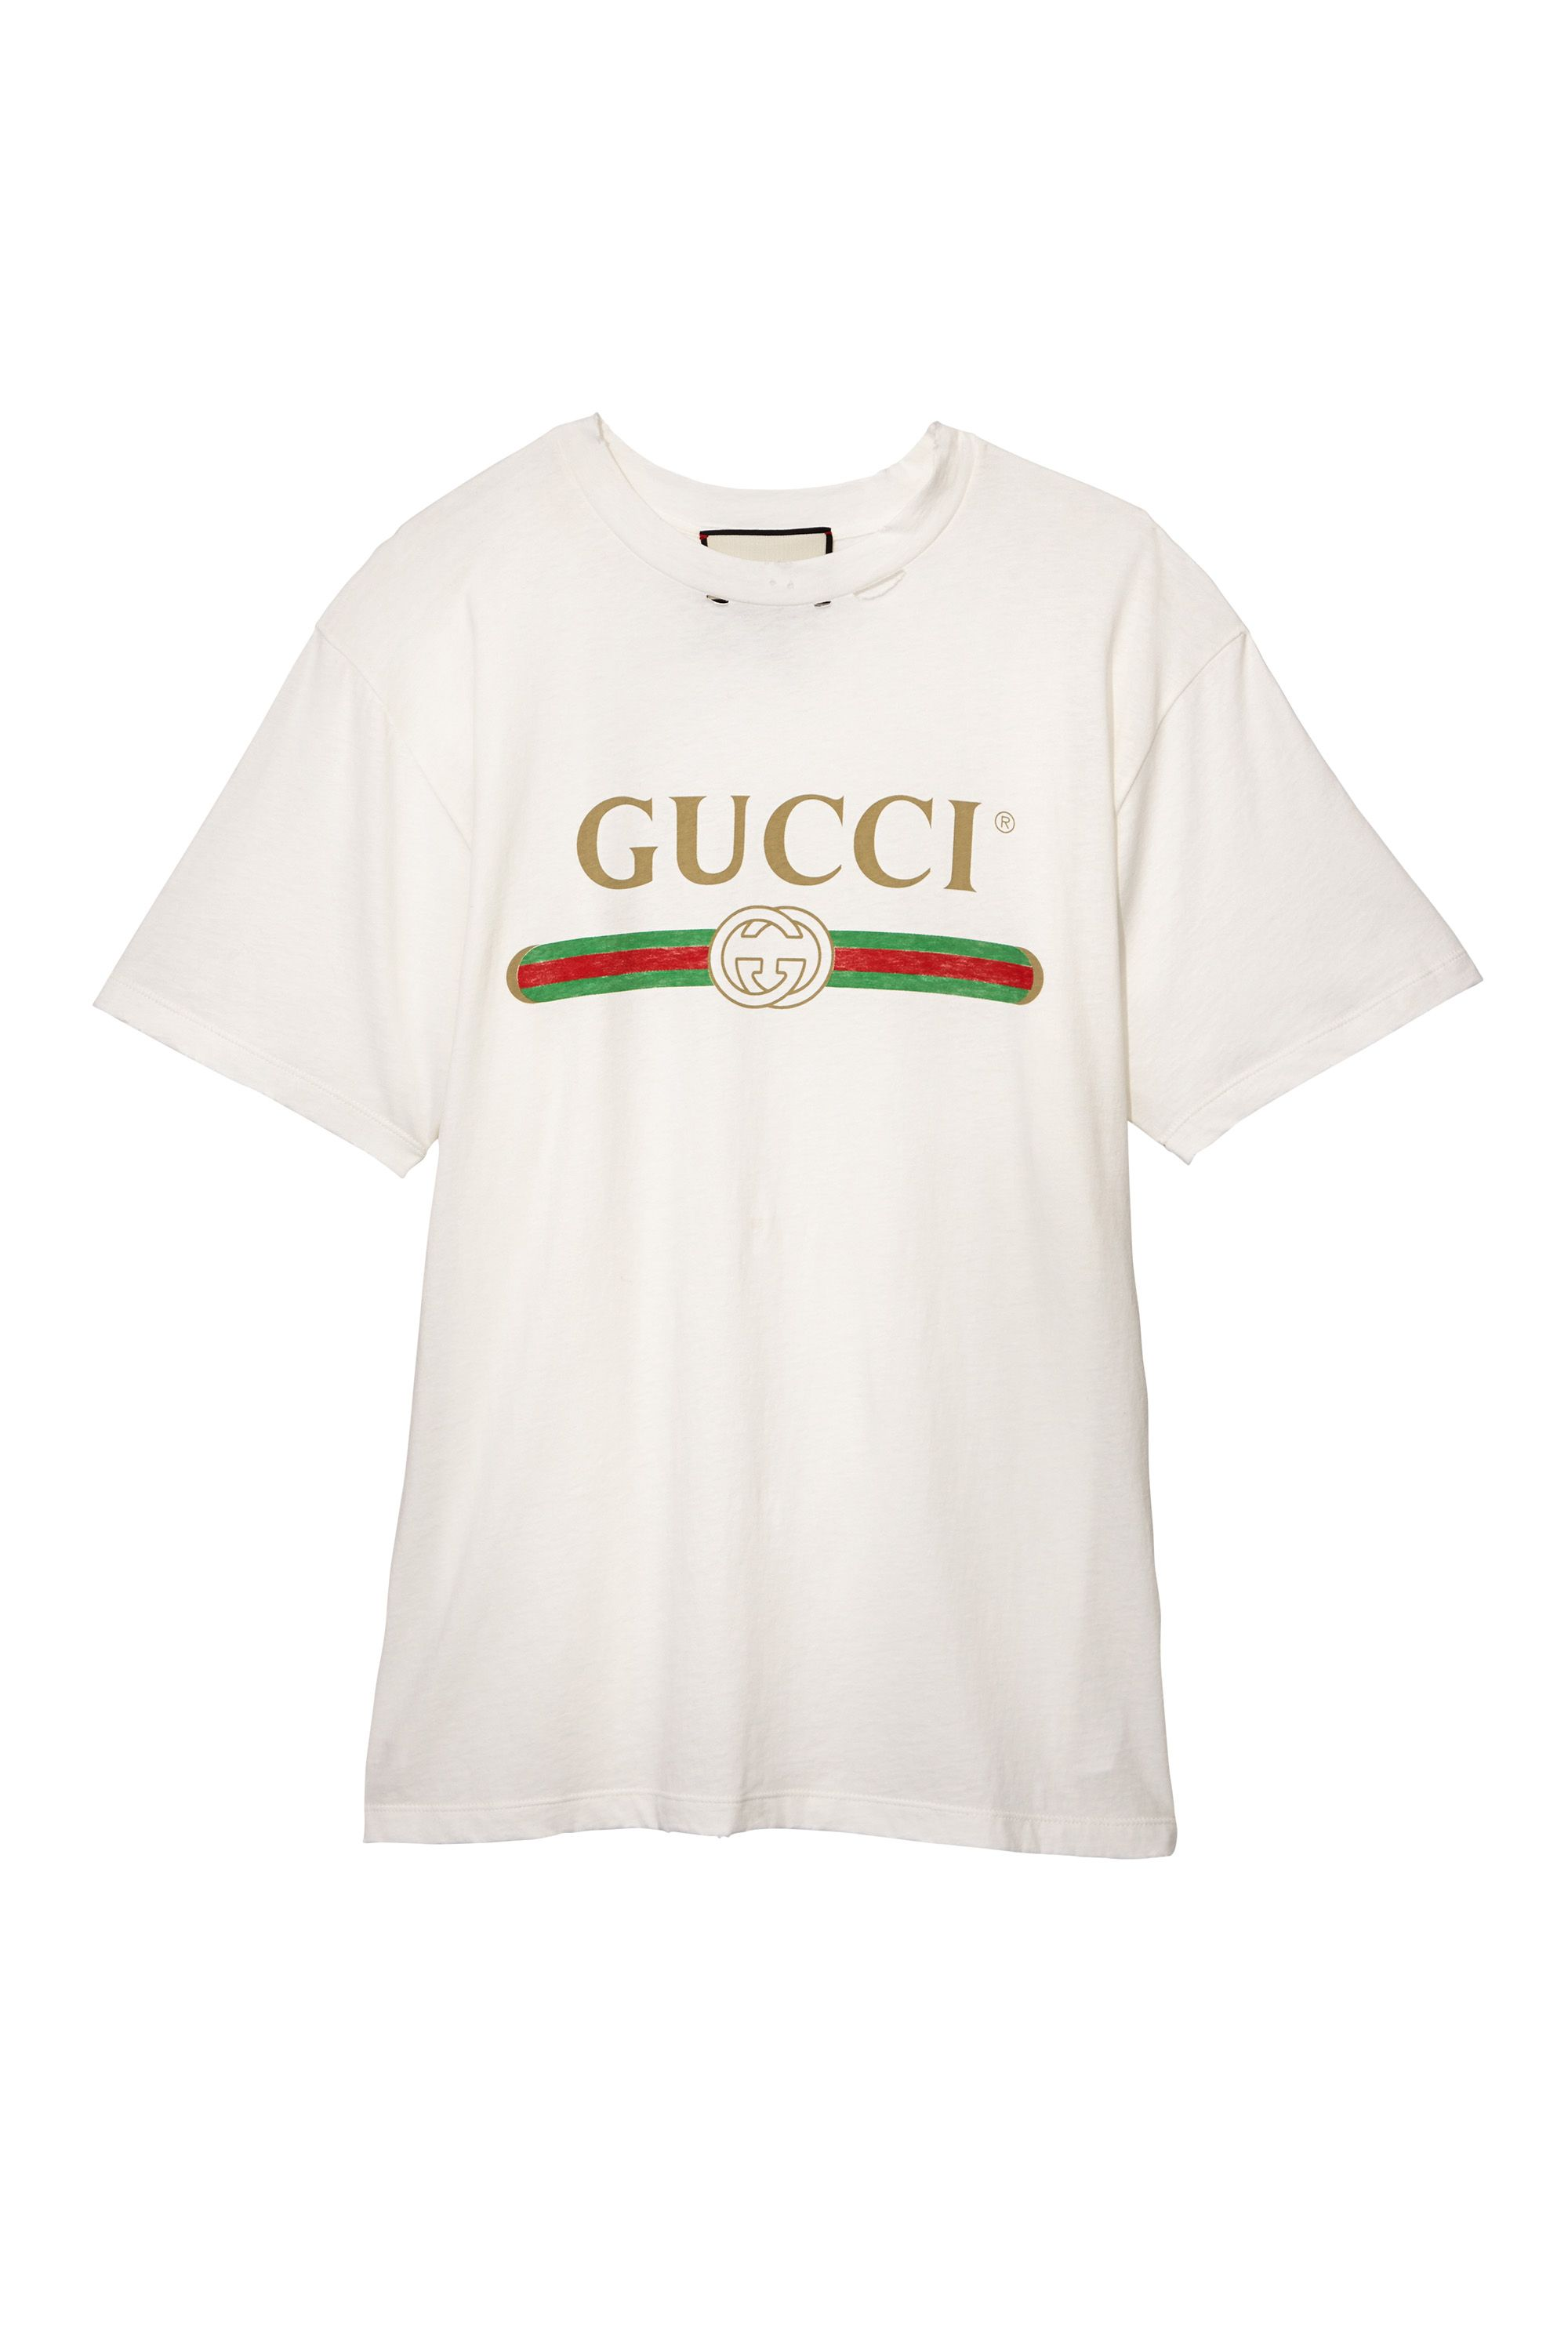 "<p>Cotton T-shirt, GUCCI, $590, at select Gucci stores nationwide<span data-redactor-tag=""span"" data-verified=""redactor""></span></p>"